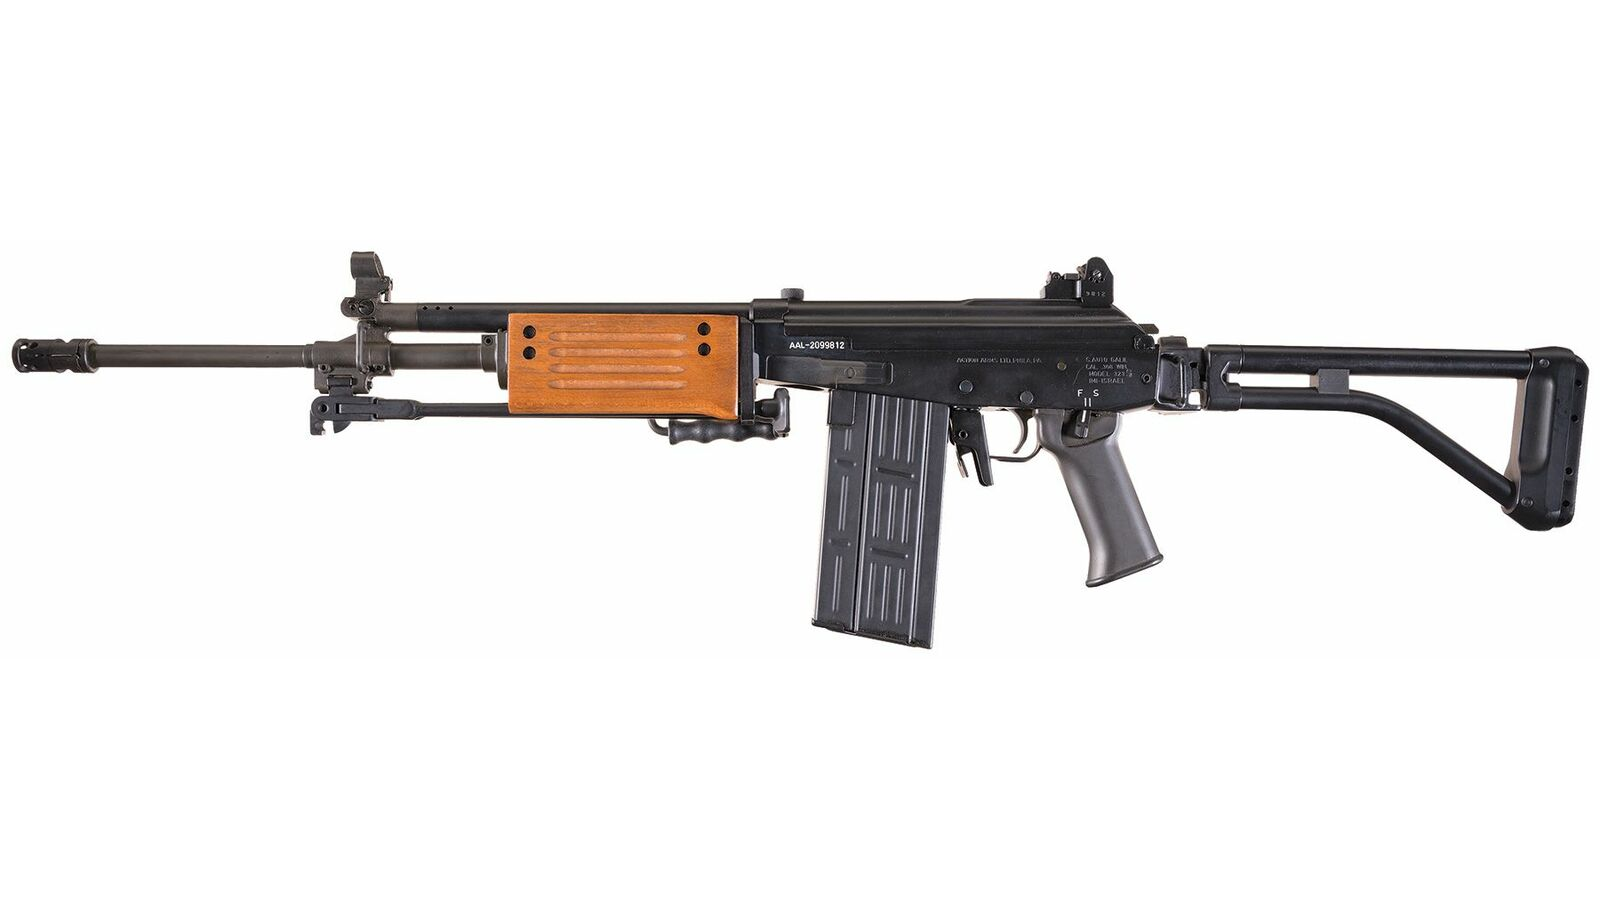 Action Arms/I M I Galil Model 323S Semi-Automatic Rifle with Box